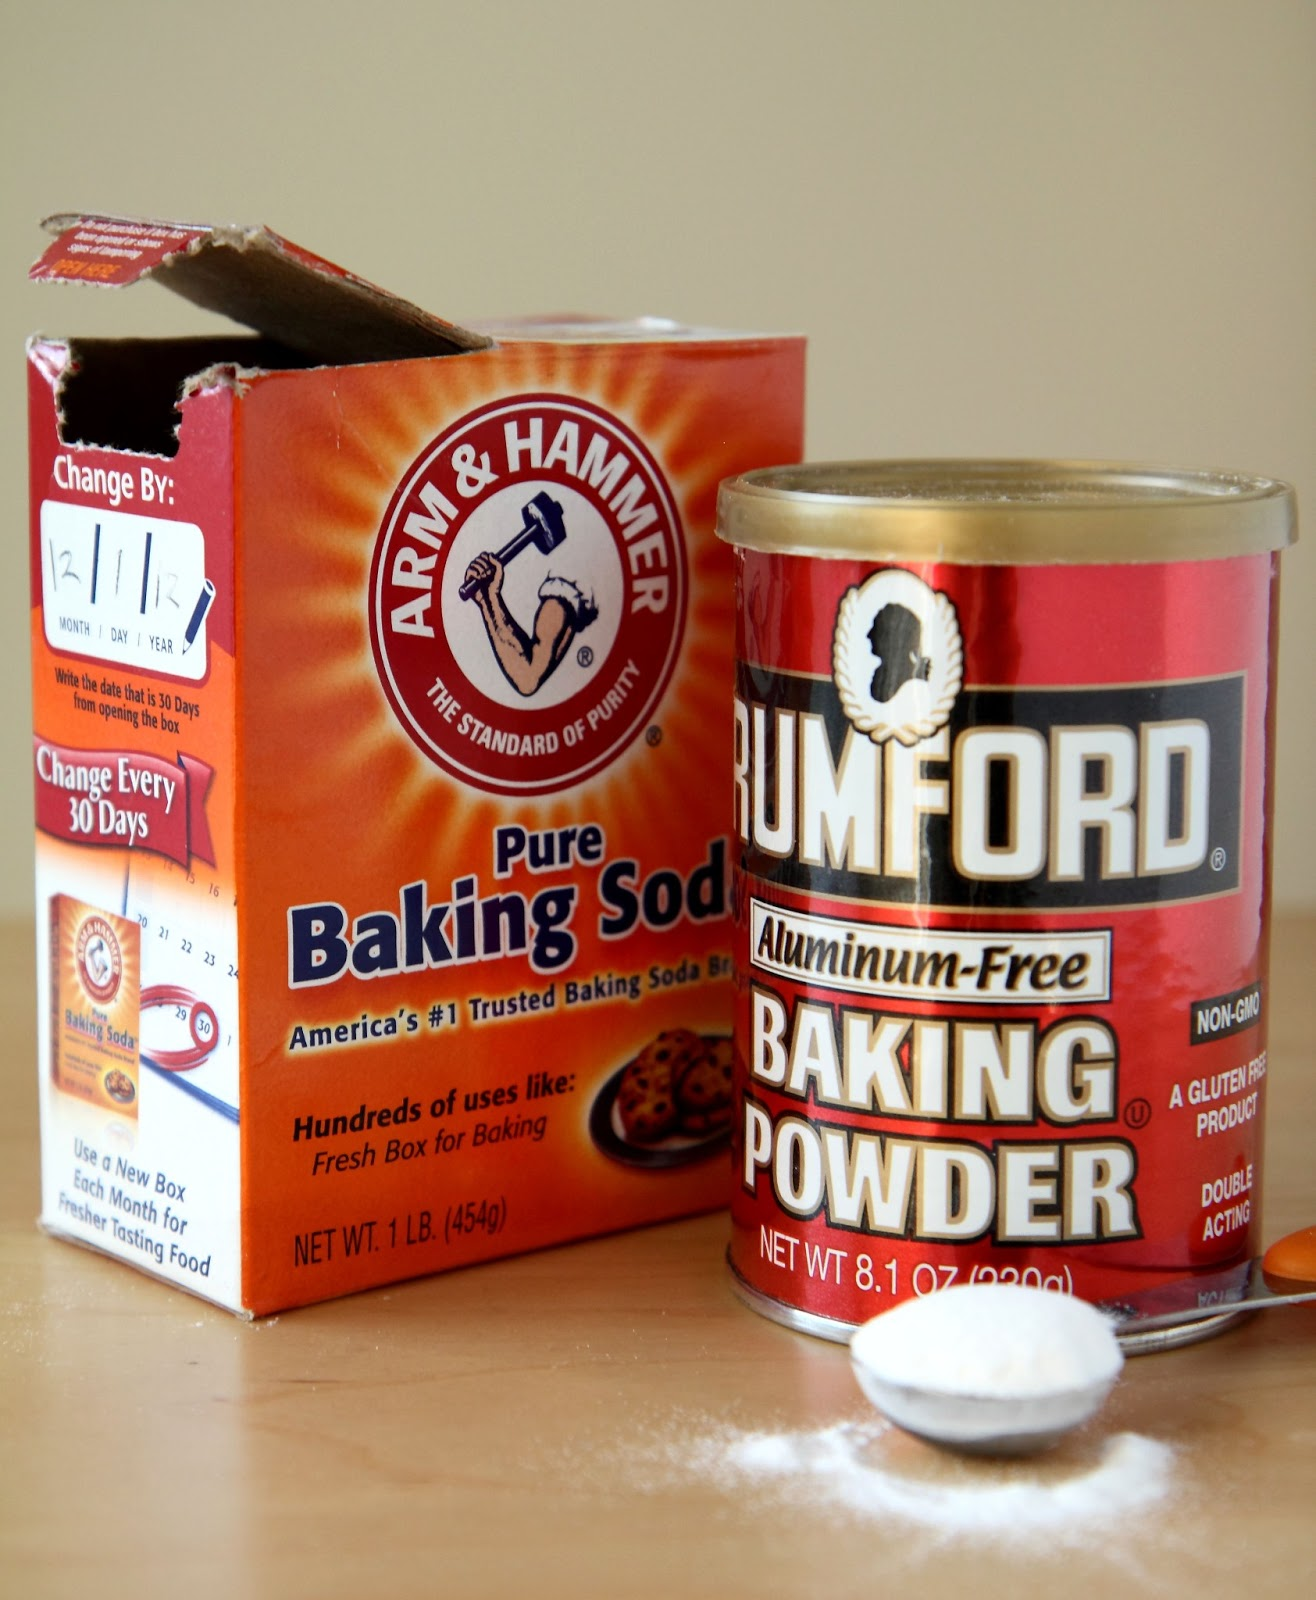 Baking Soda, Baking Powder, and Yeast - Blowing Bubbles In The Name